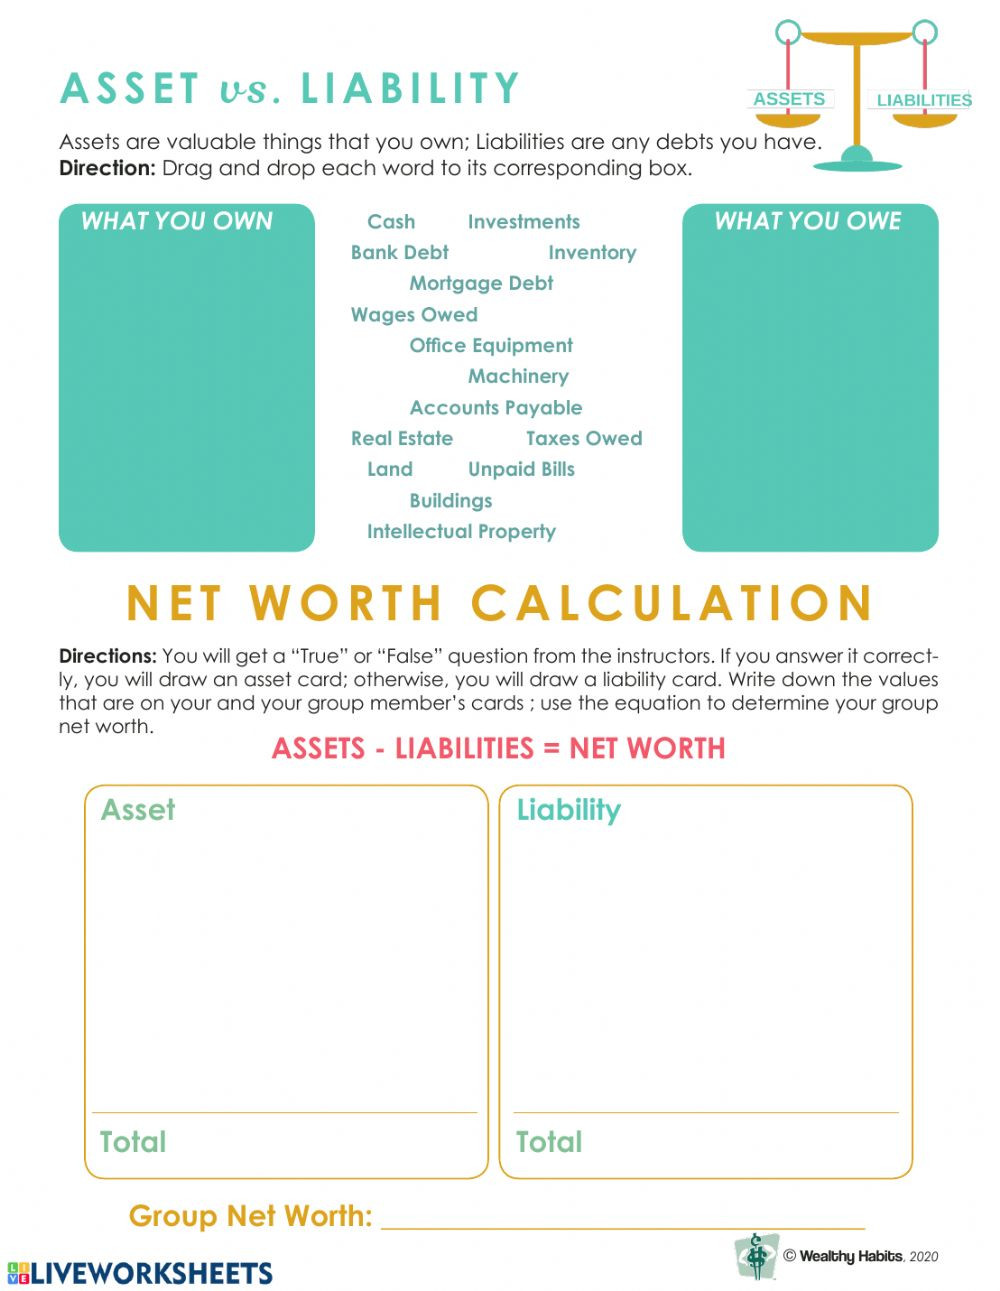 Assets and Liabilities Worksheet Wealthy Habits asset Vs Liability Interactive Worksheet